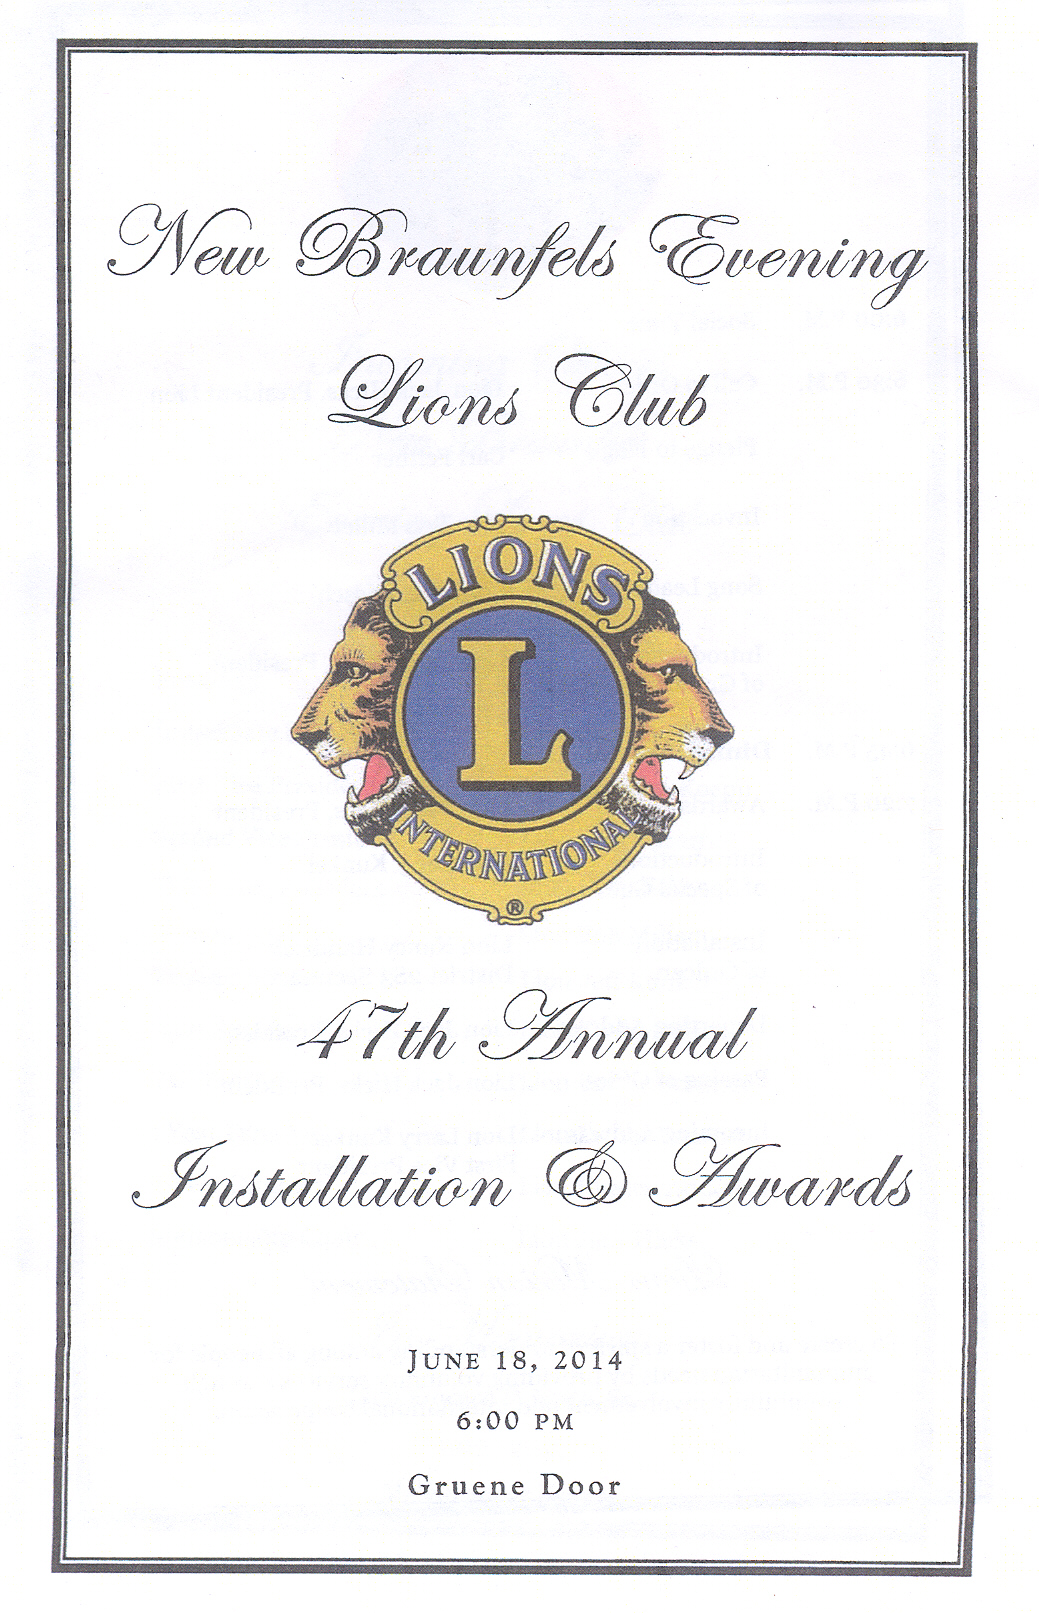 2014 Installation And Awards Banquet New Braunfels Evening Lions Club